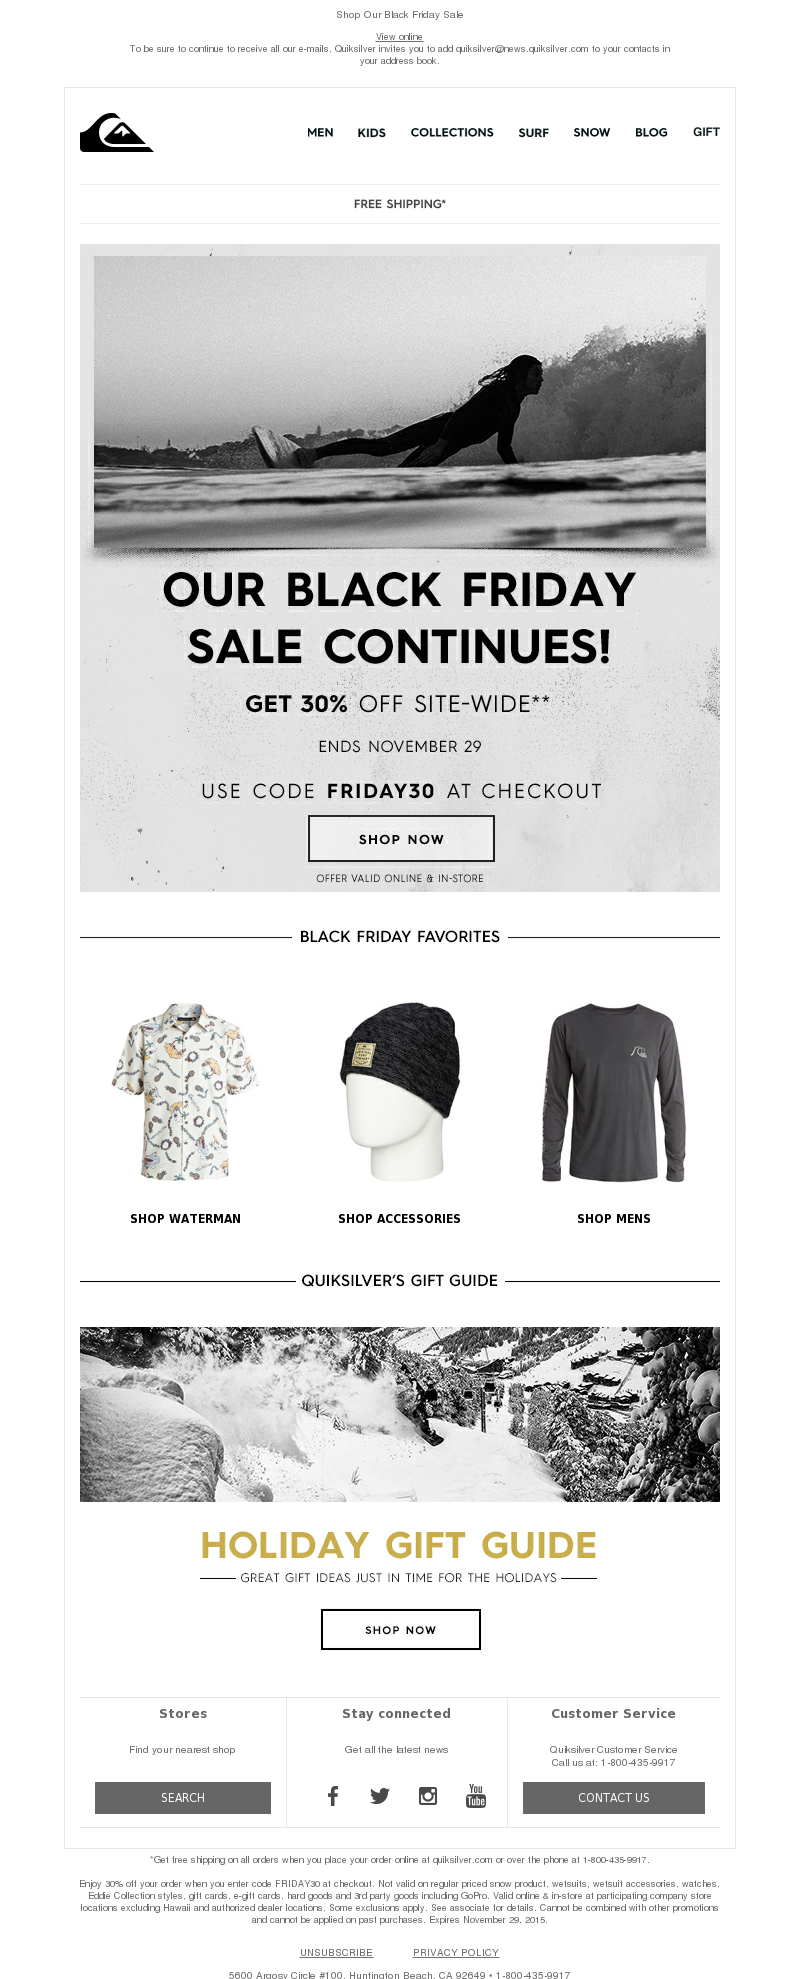 Quiksilver Email Marketing Examples